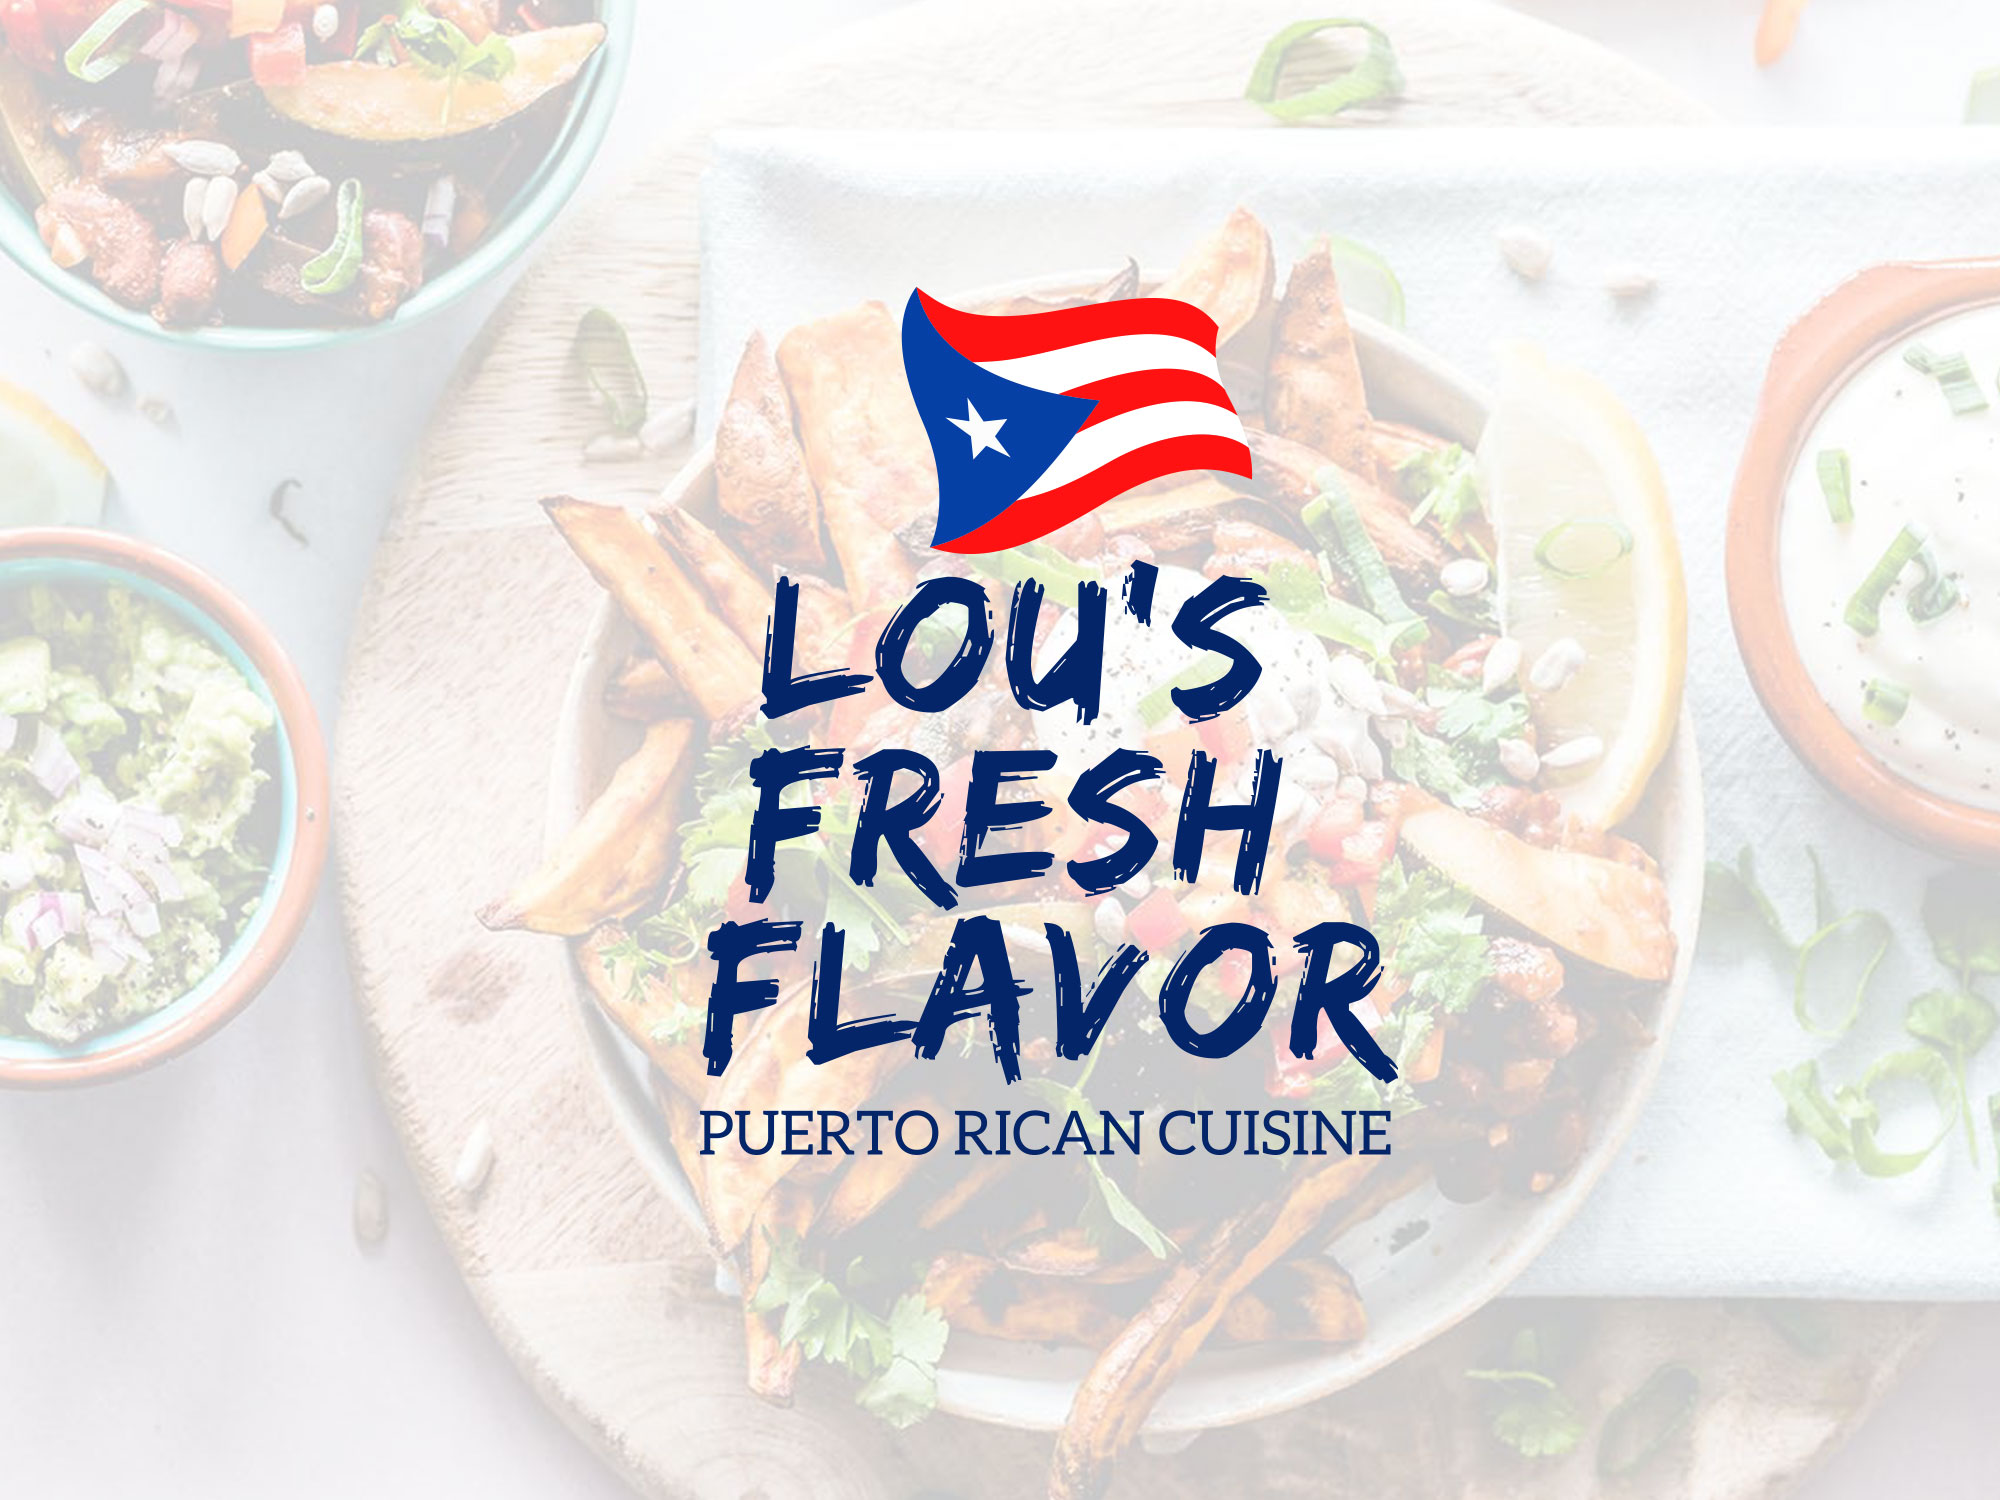 Lou's Fresh Flavor web design and branding project